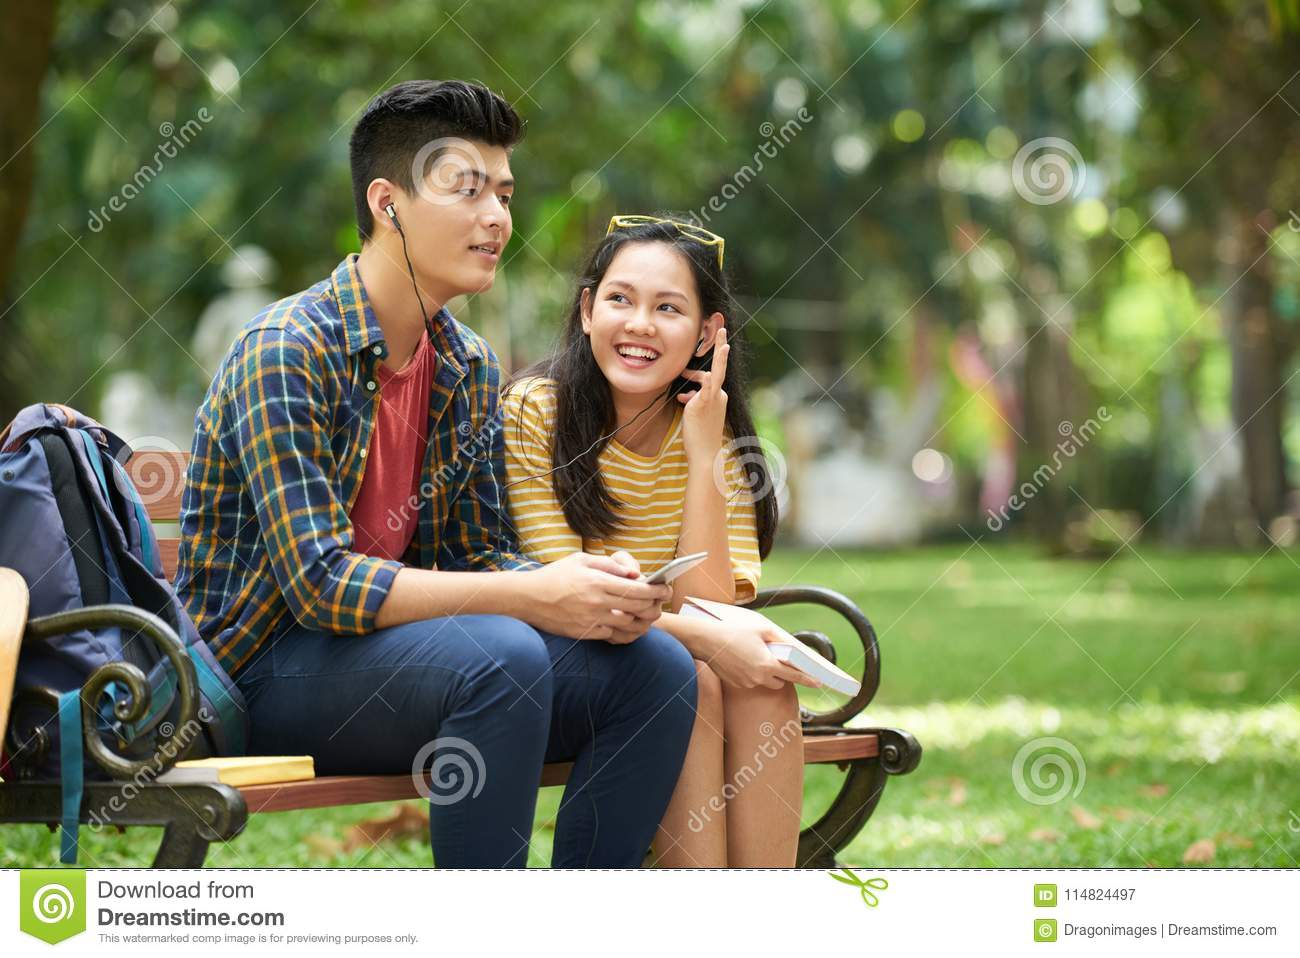 sharing music with girlfriend stock image - image of teenager